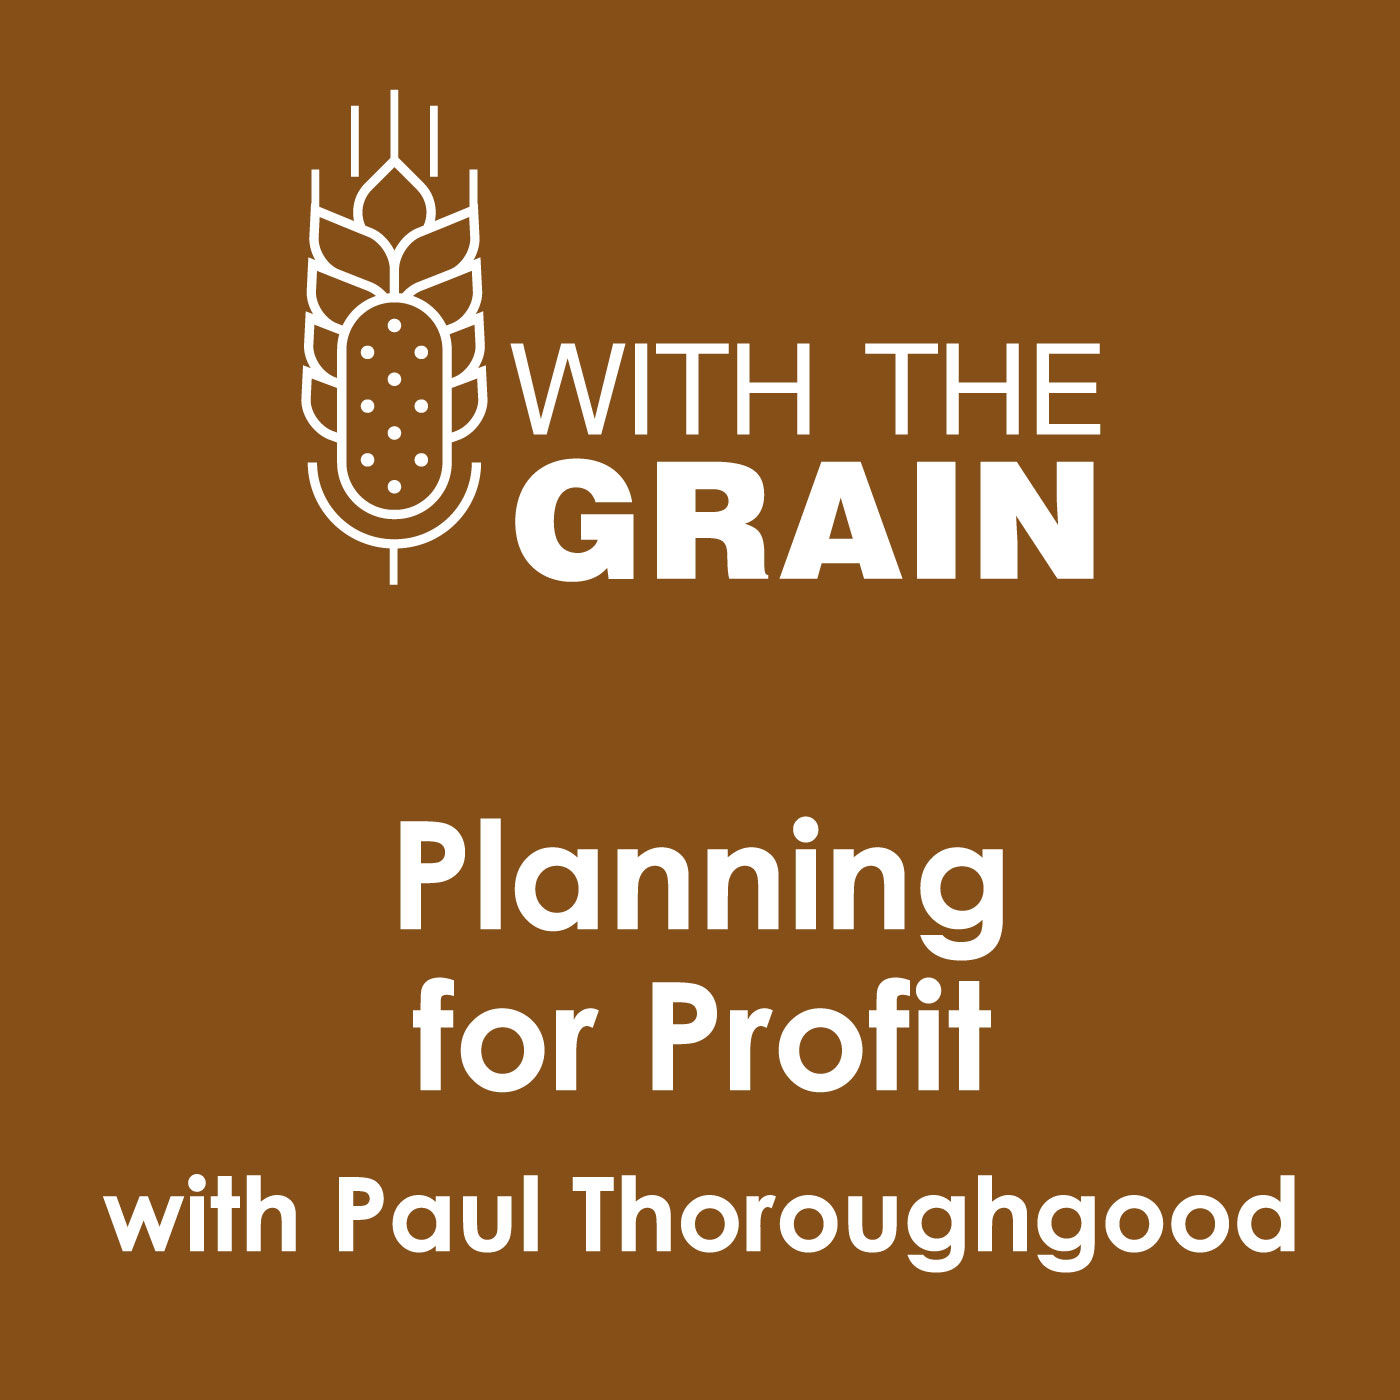 Planning for Profit, with Paul Thoroughgood